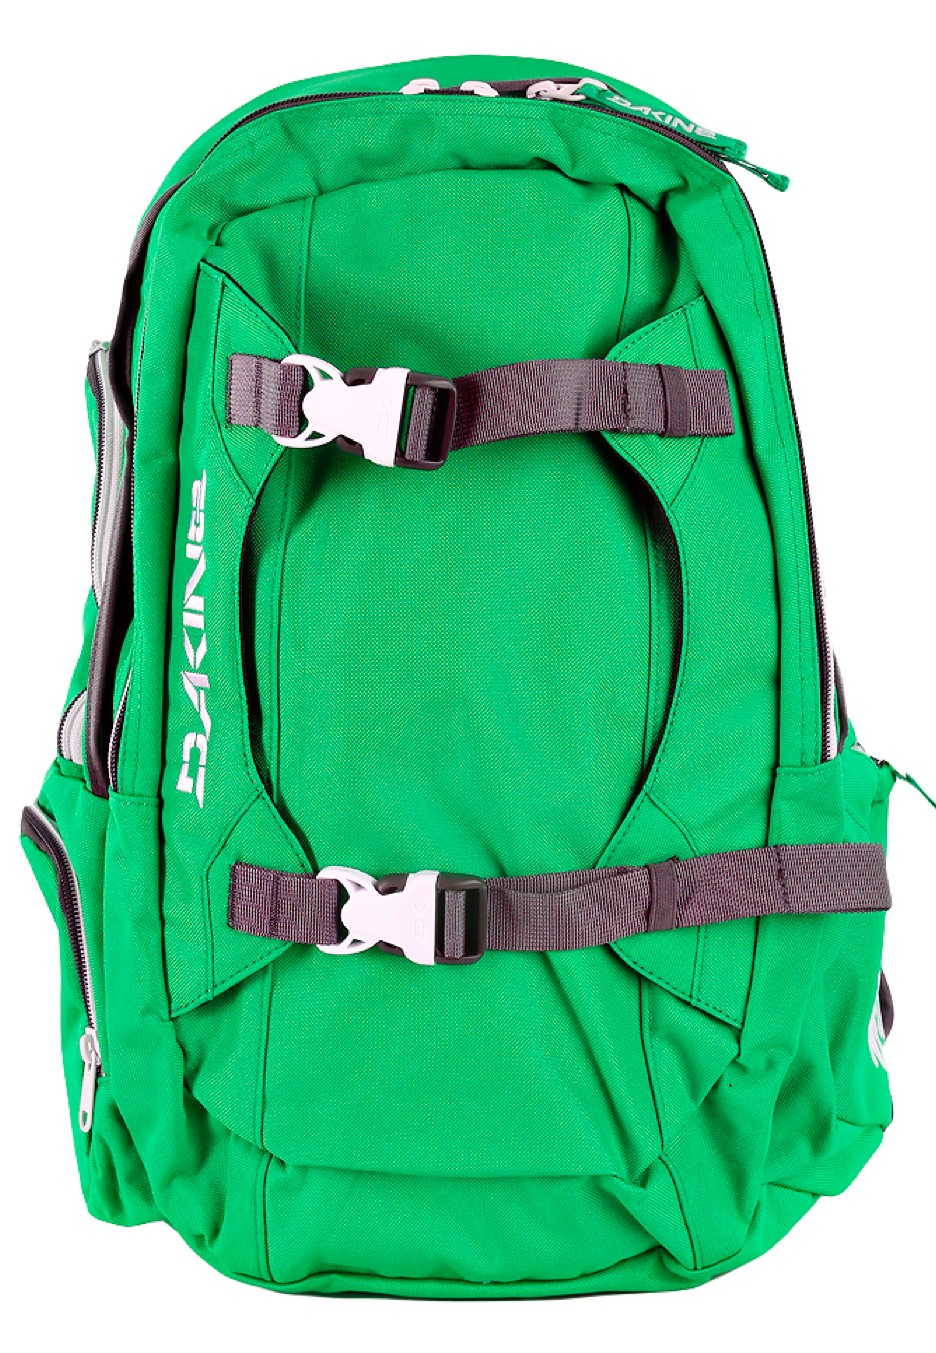 Dakine - Mission Pack Green - Backpack - Impericon.com Worldwide